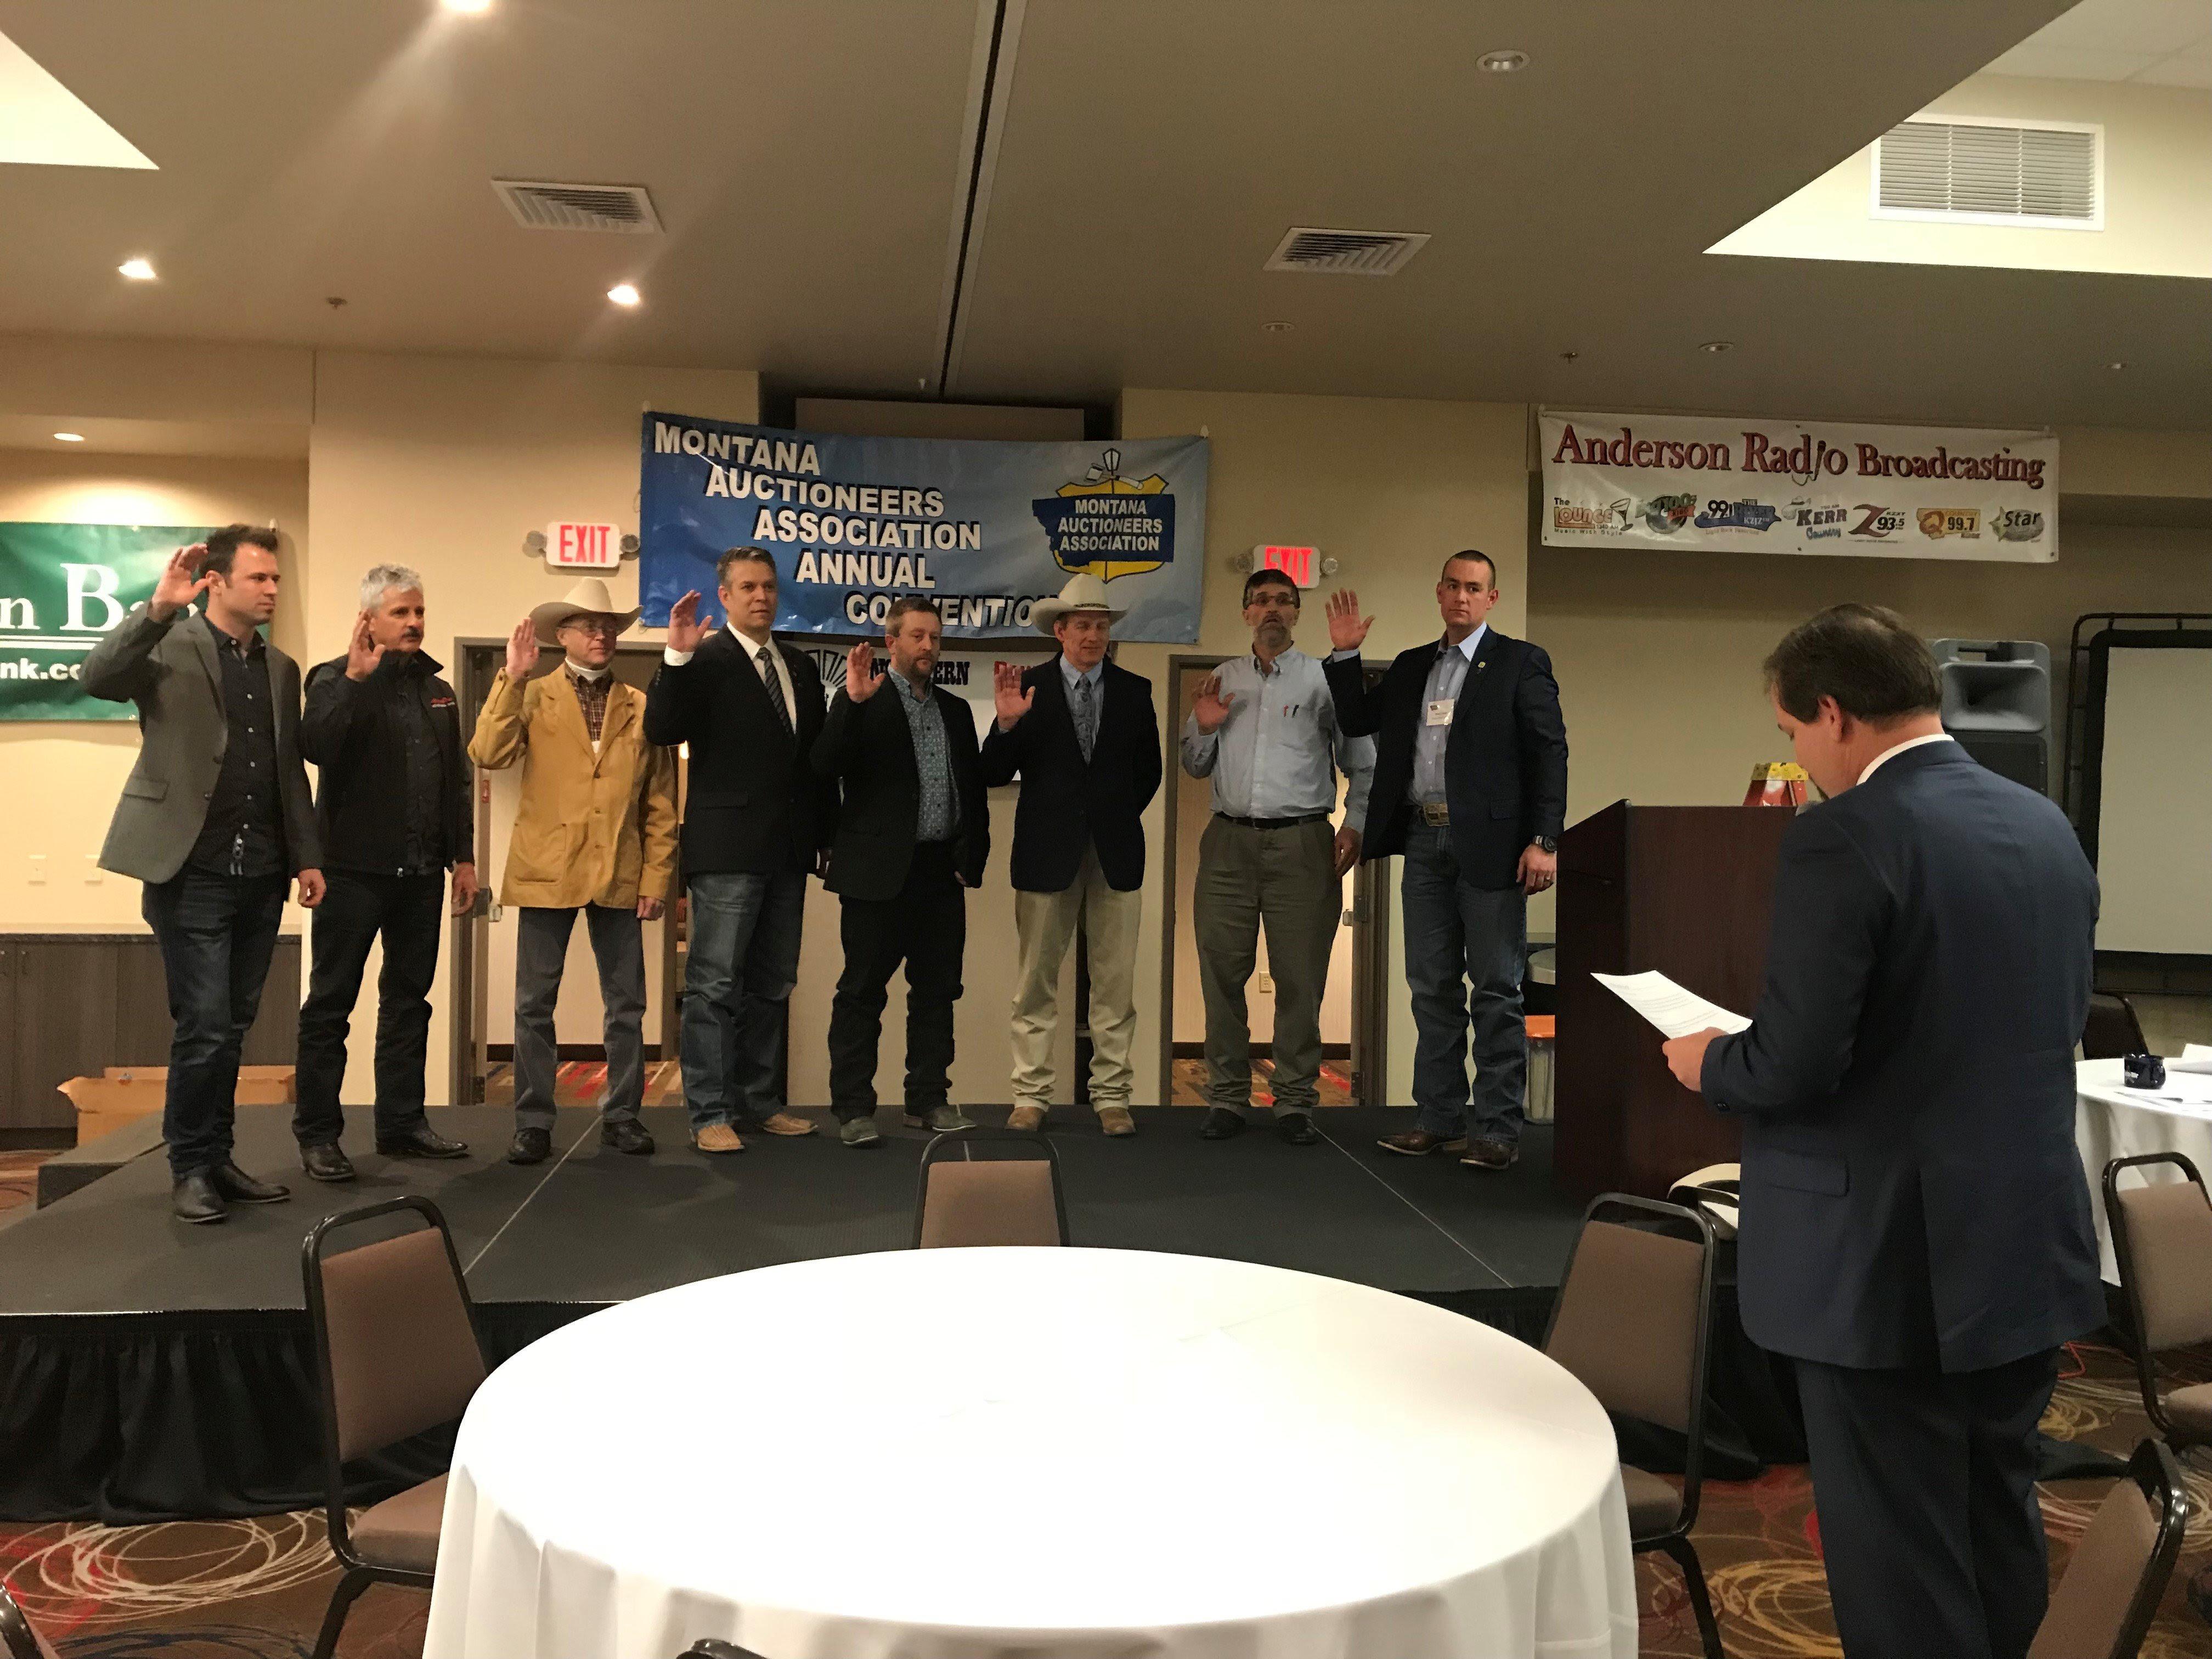 Tim Mast swears in the 2019 Montana Auctioneer Board of Directors. Left to right: Wade Affleck, Merton Musser, Robert McDowell III, JK Kinsey, Brian Young, Kevin Hill, Gideon Yutzy and Reed Tobol